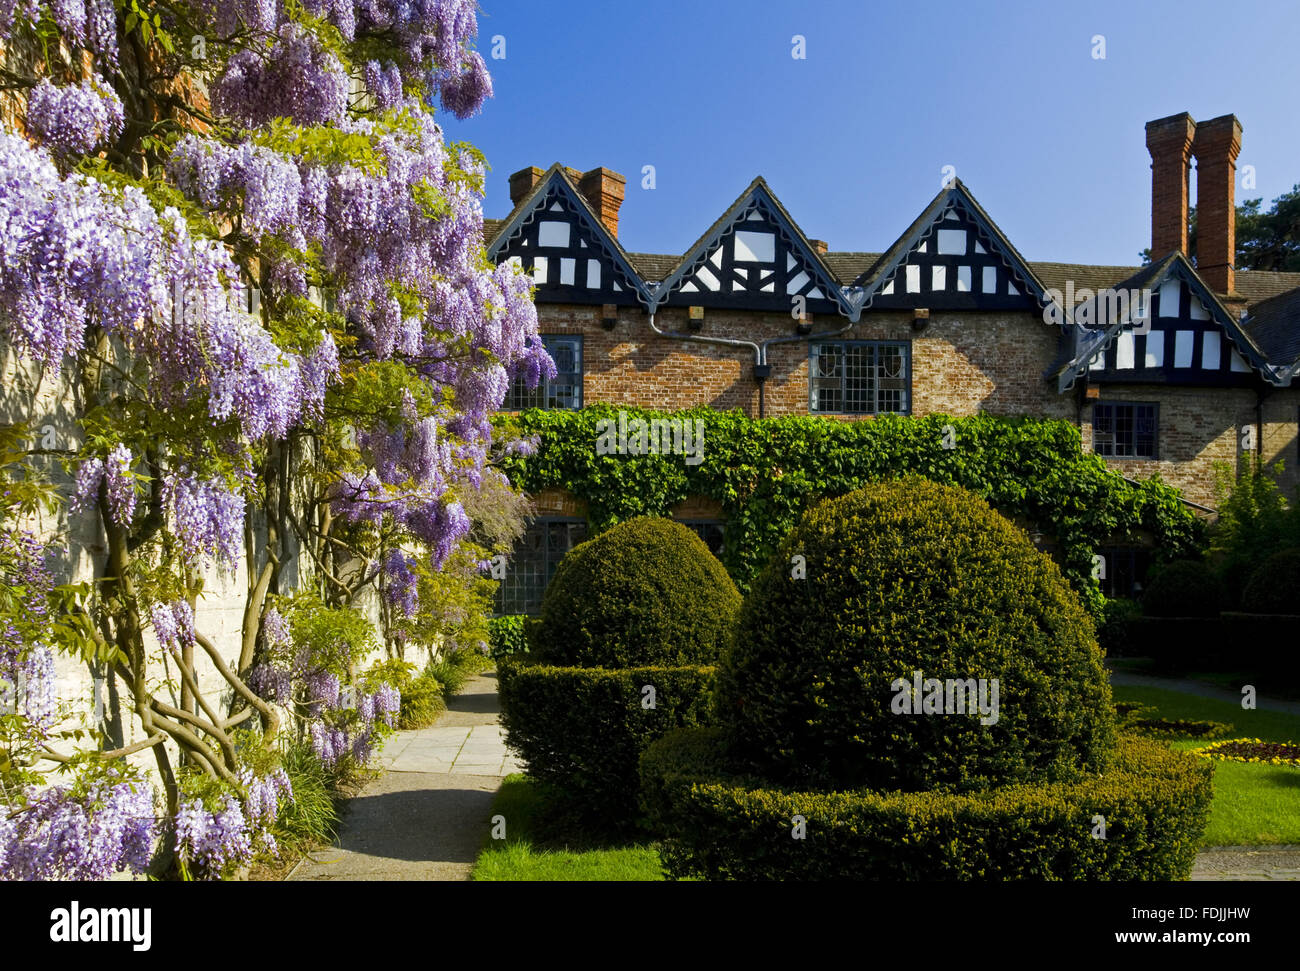 Topiary and wisteria in the Courtyard in May at Baddesley Clinton, Warwickshire. Stock Photo